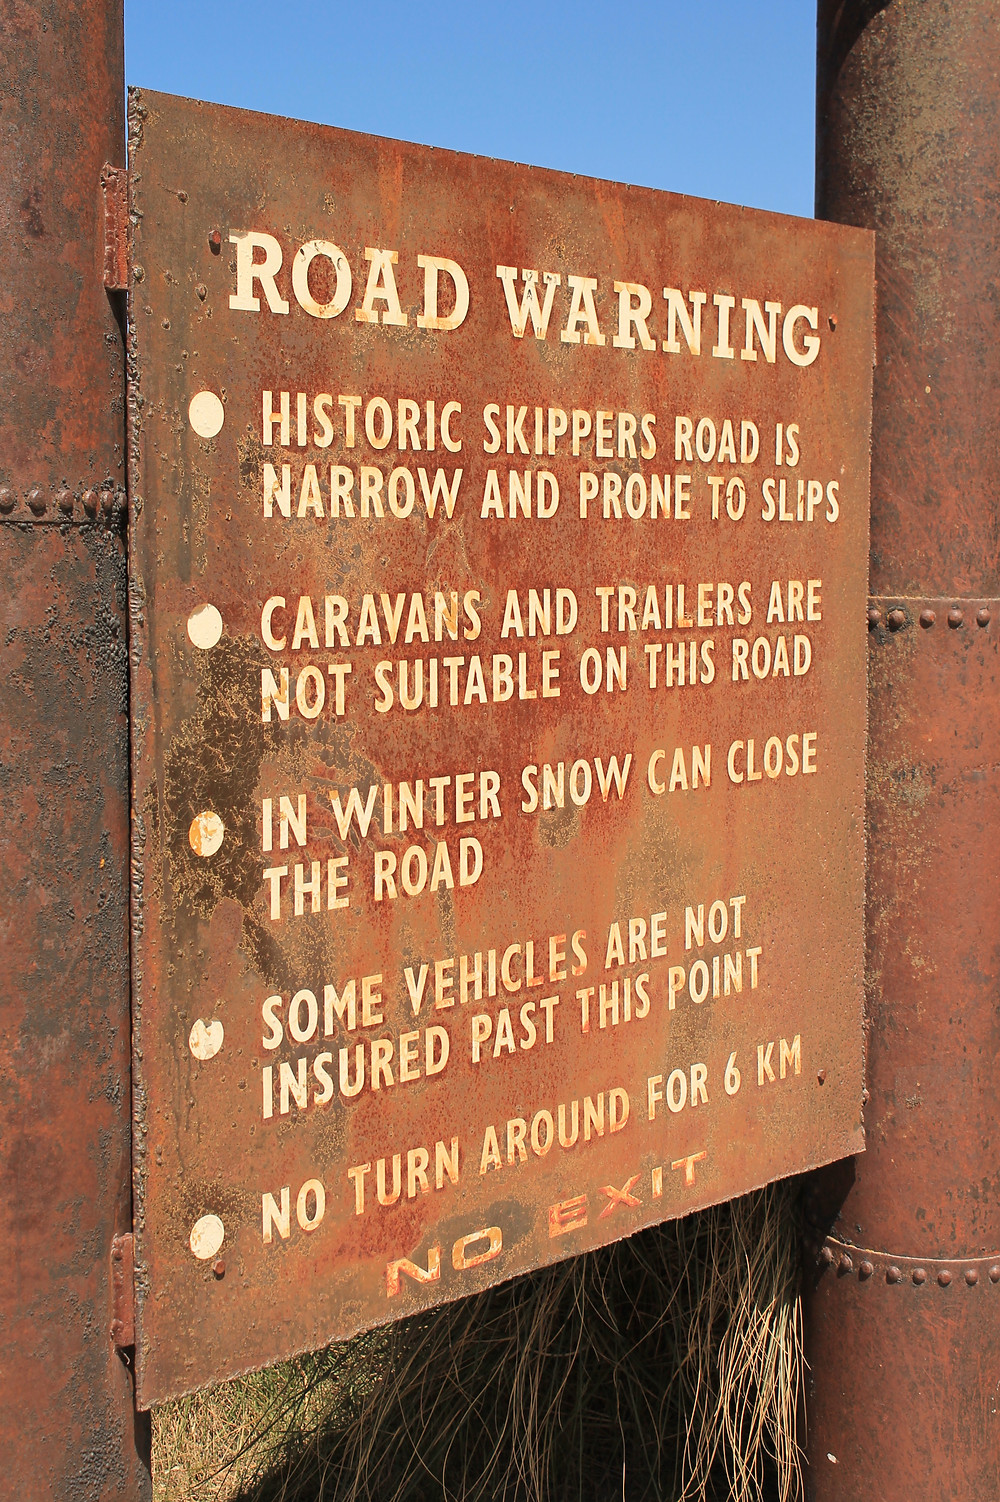 Warning sign on Skippers Road en route to Skippers Canyon jet boat adrenaline fix